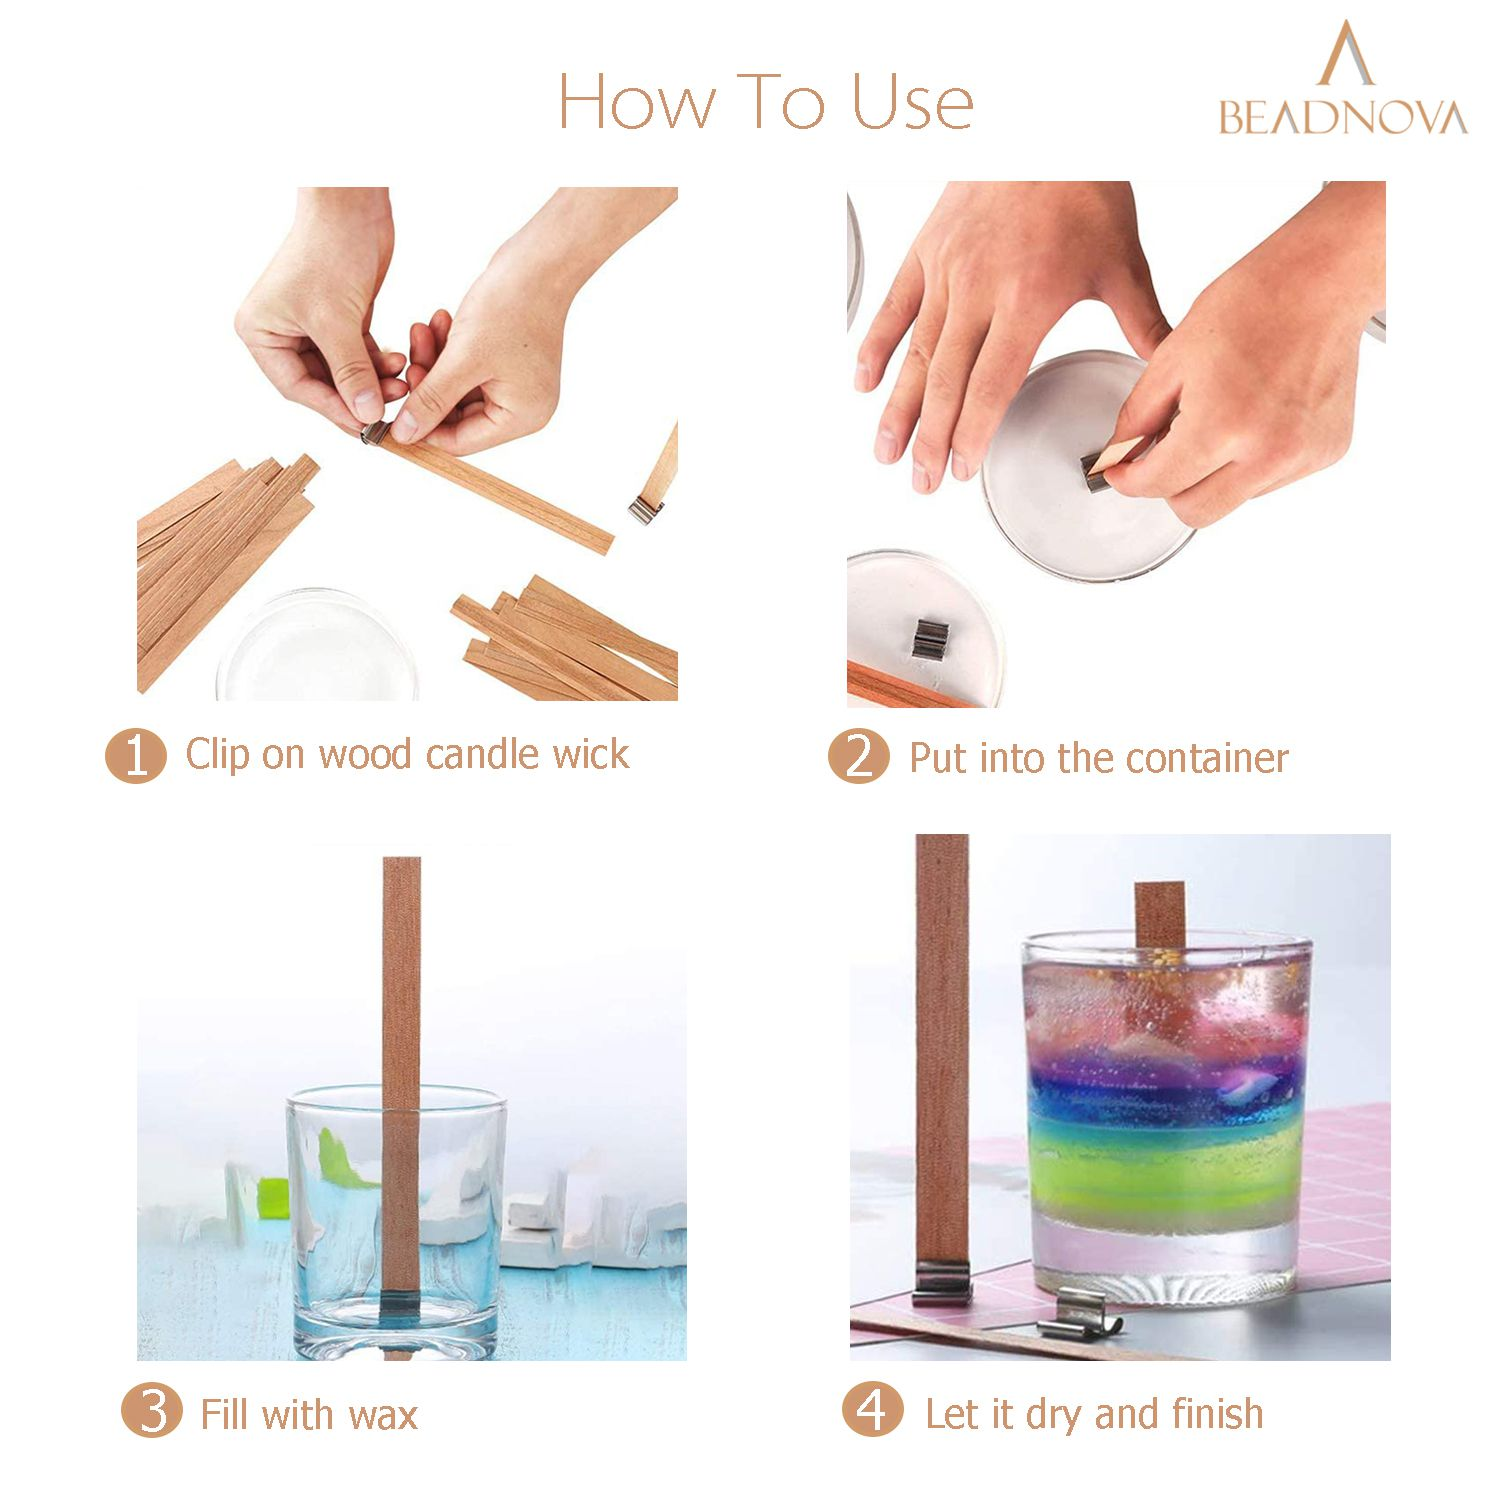 BEADNOVA Wood Wicks for Candles with Substainer Tab 20pcs Wooden Thick Candle Wicks Crackling Wood Wicks with Iron Stand Wooden Wicks for Candle Making